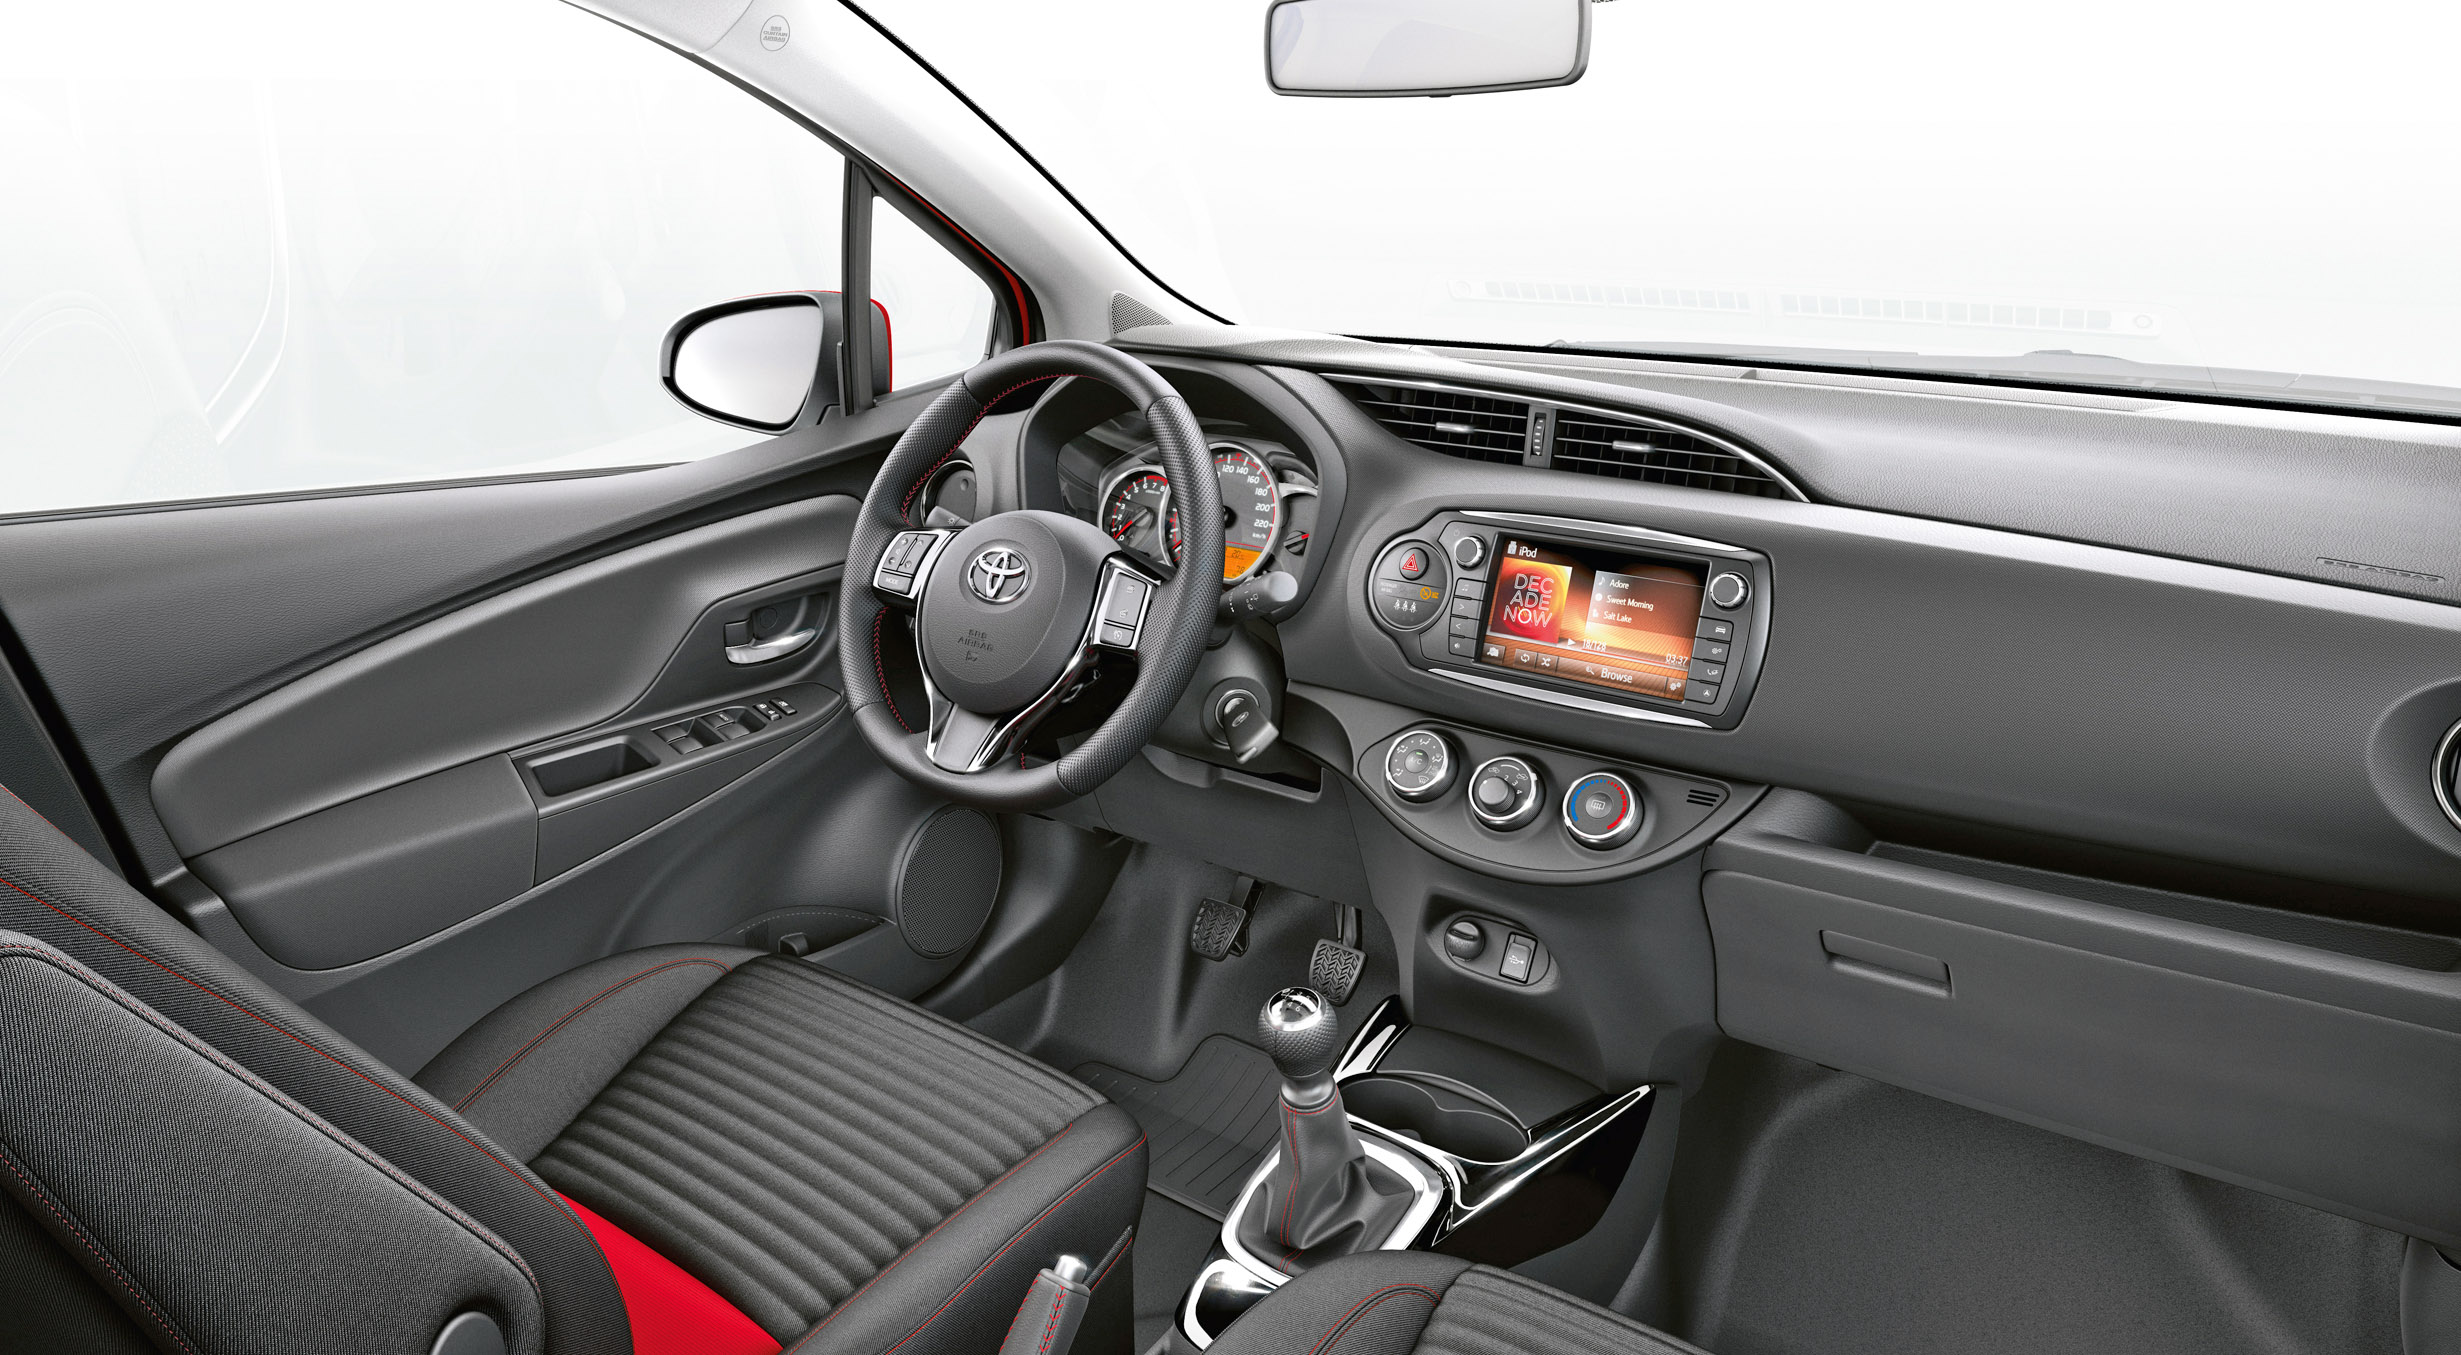 Quelle toyota yaris choisir for Interieur yaris 2015